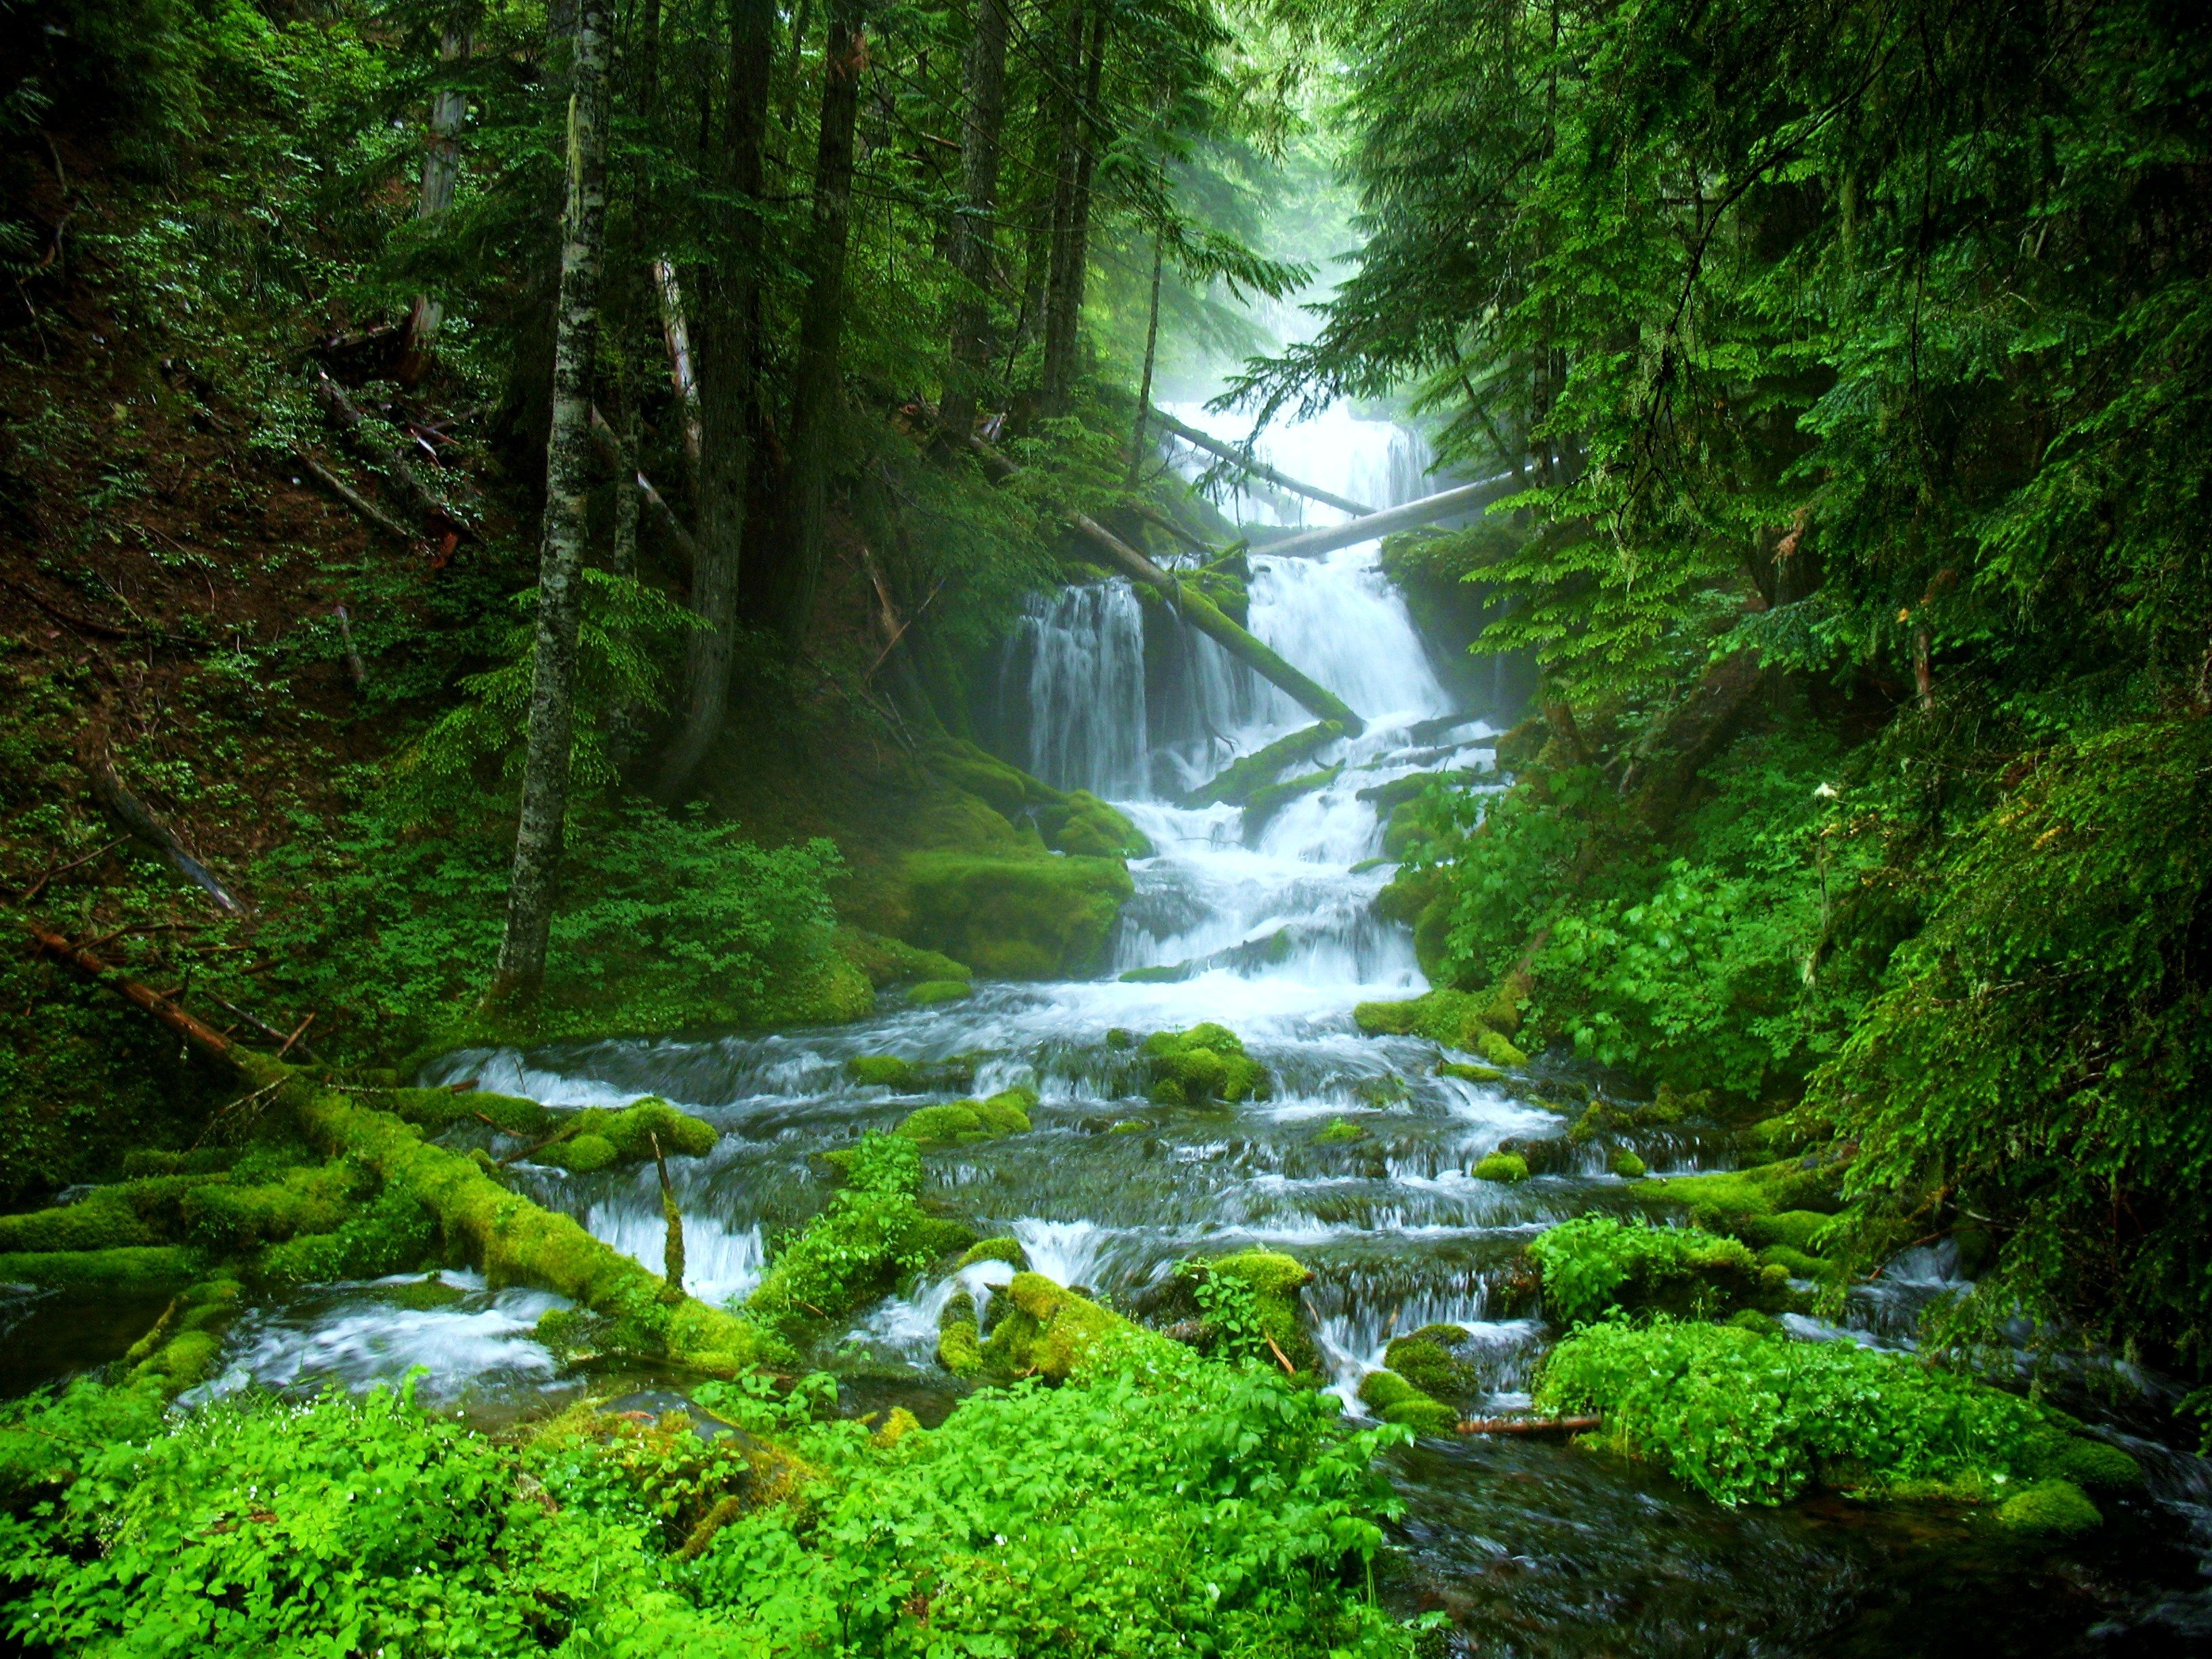 Of Stream Beautiful Forest Green Nature Water Waterfall Wallpaper Green Nature Wallpaper Green Nature Forest Waterfall